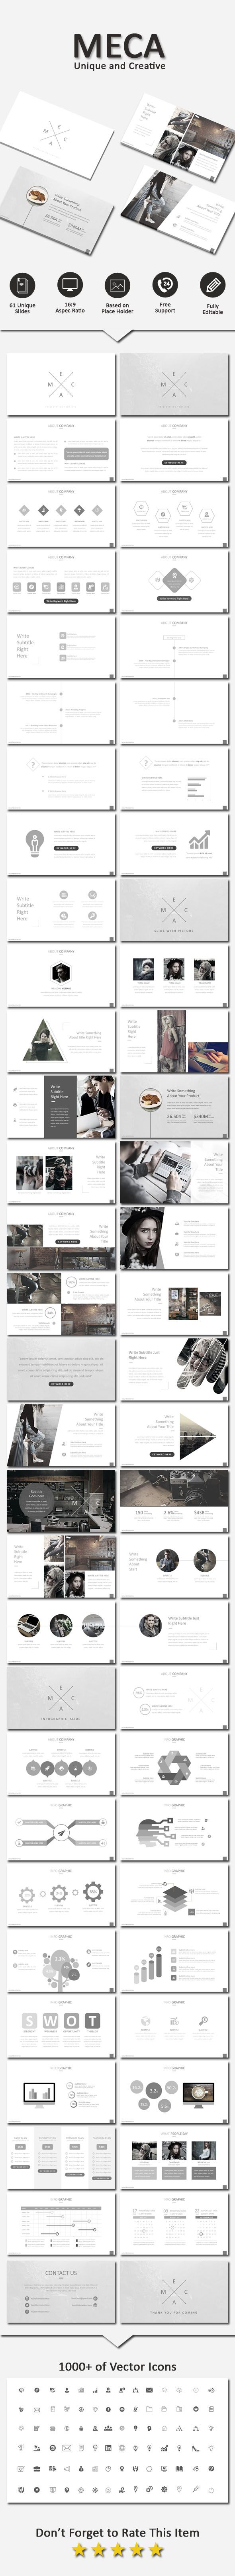 Meca Creative Powerpoint - Business PowerPoint Templates Download here: https://graphicriver.net/item/meca-creative-powerpoint/19791684?ref=classicdesignp